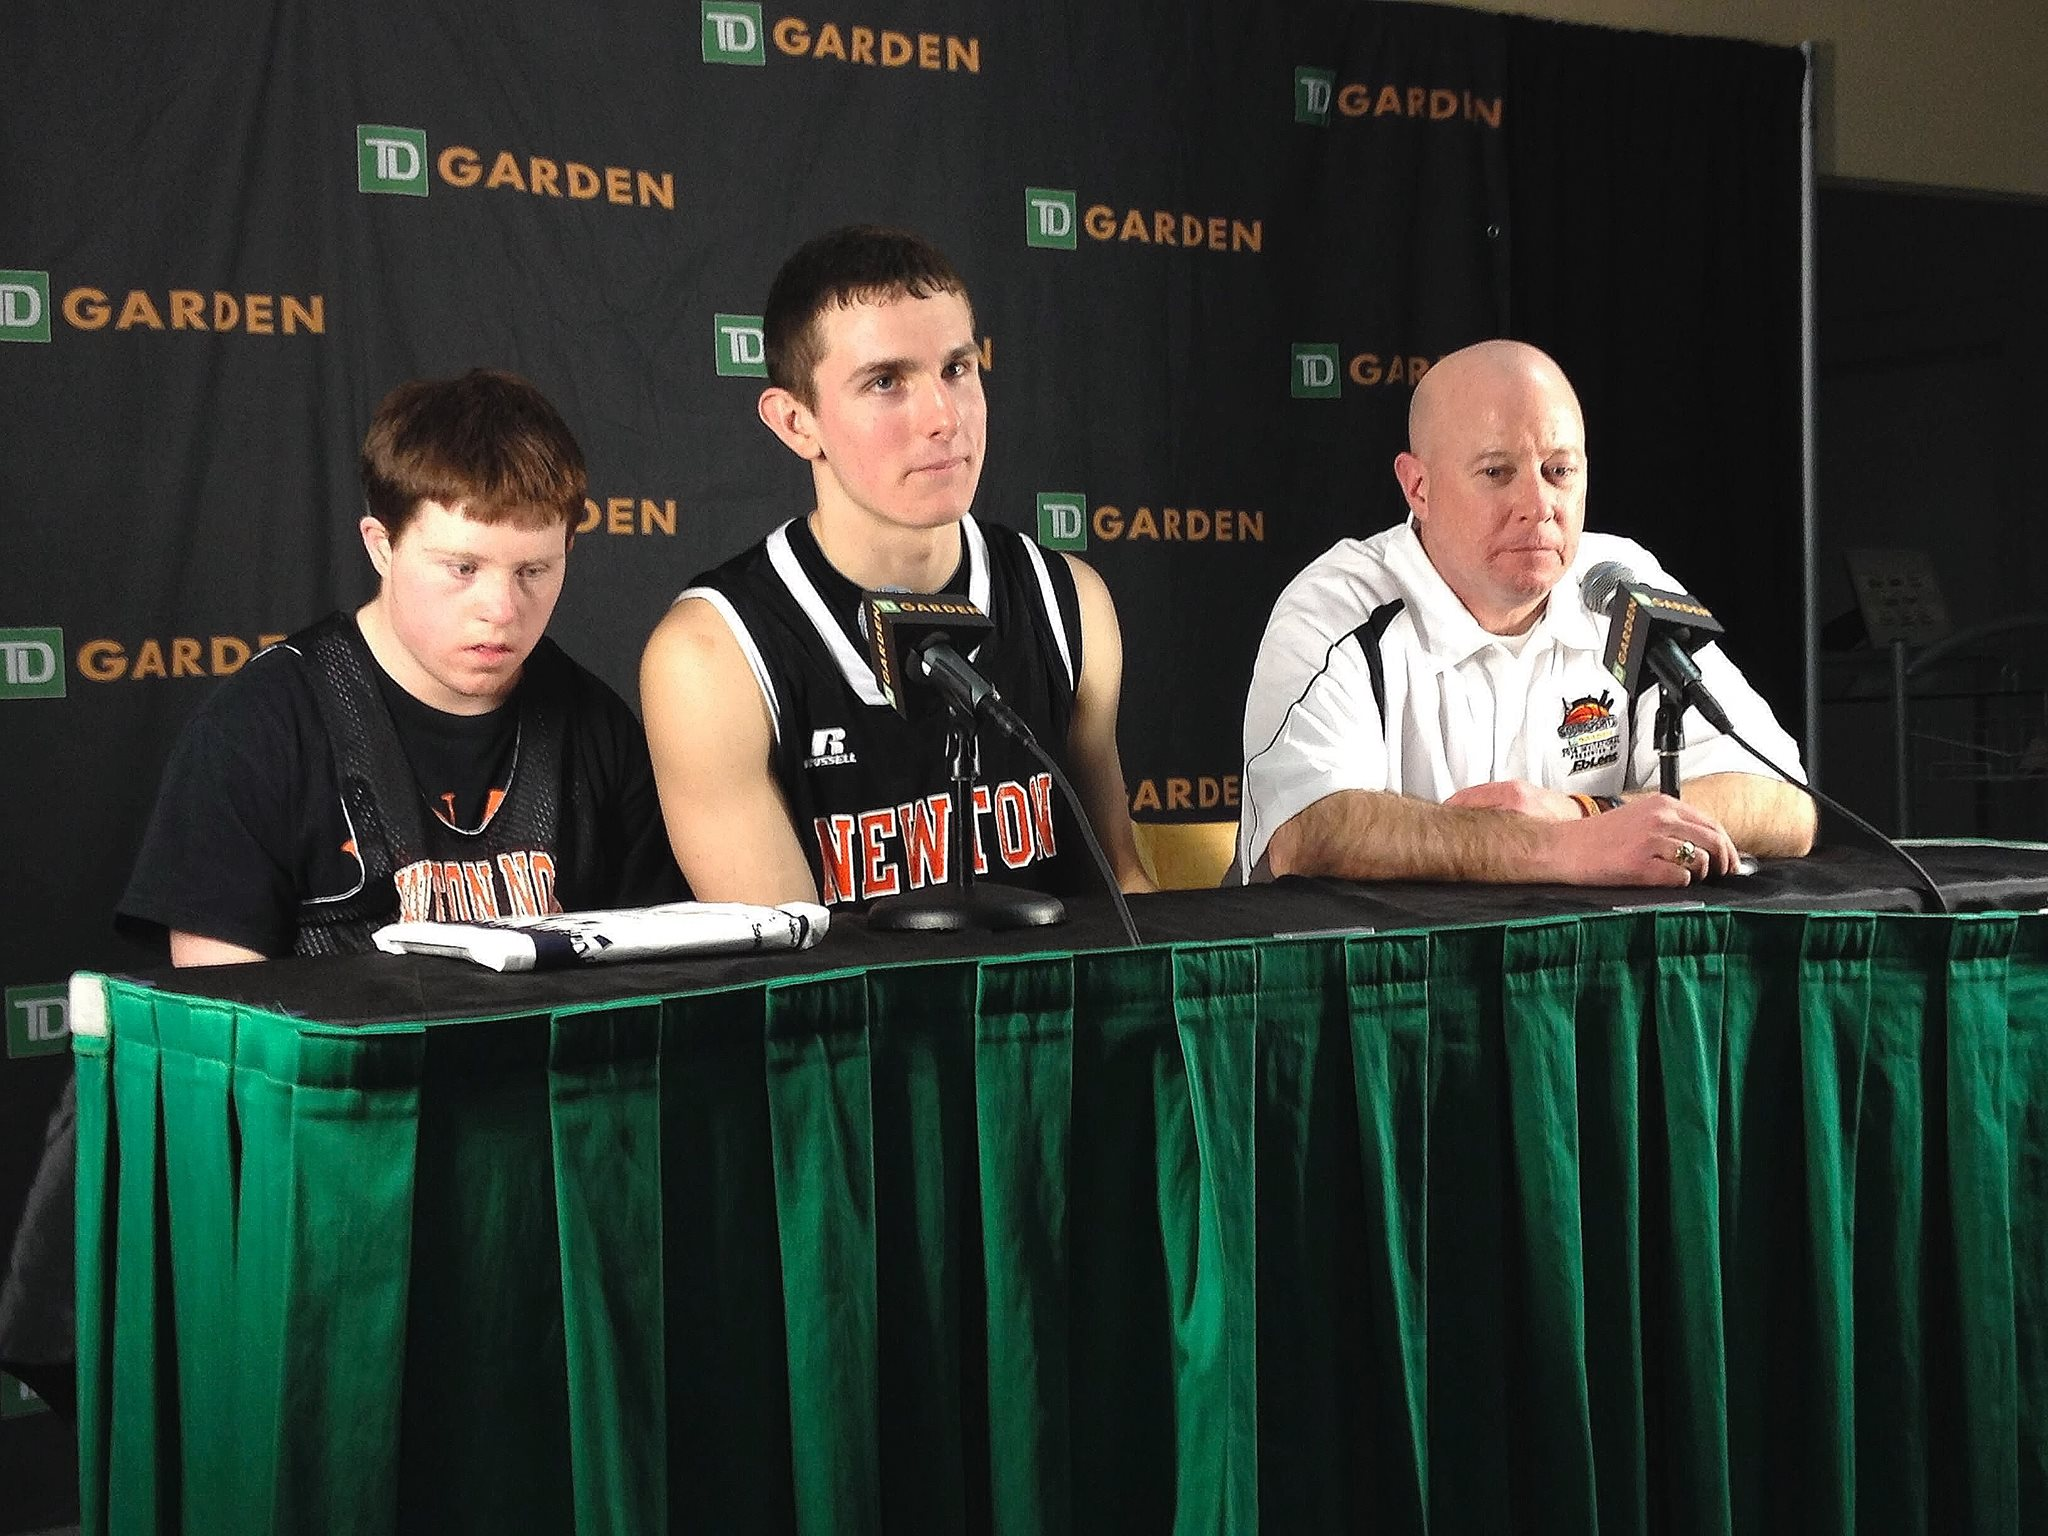 Team manager Brendan Durkin, junior captain Tommy Mobley, and basketball coach Paul Connolly fielding questions at last Saturday's Good Sports Invitational press conference. Photo by Jacob Gurvis.